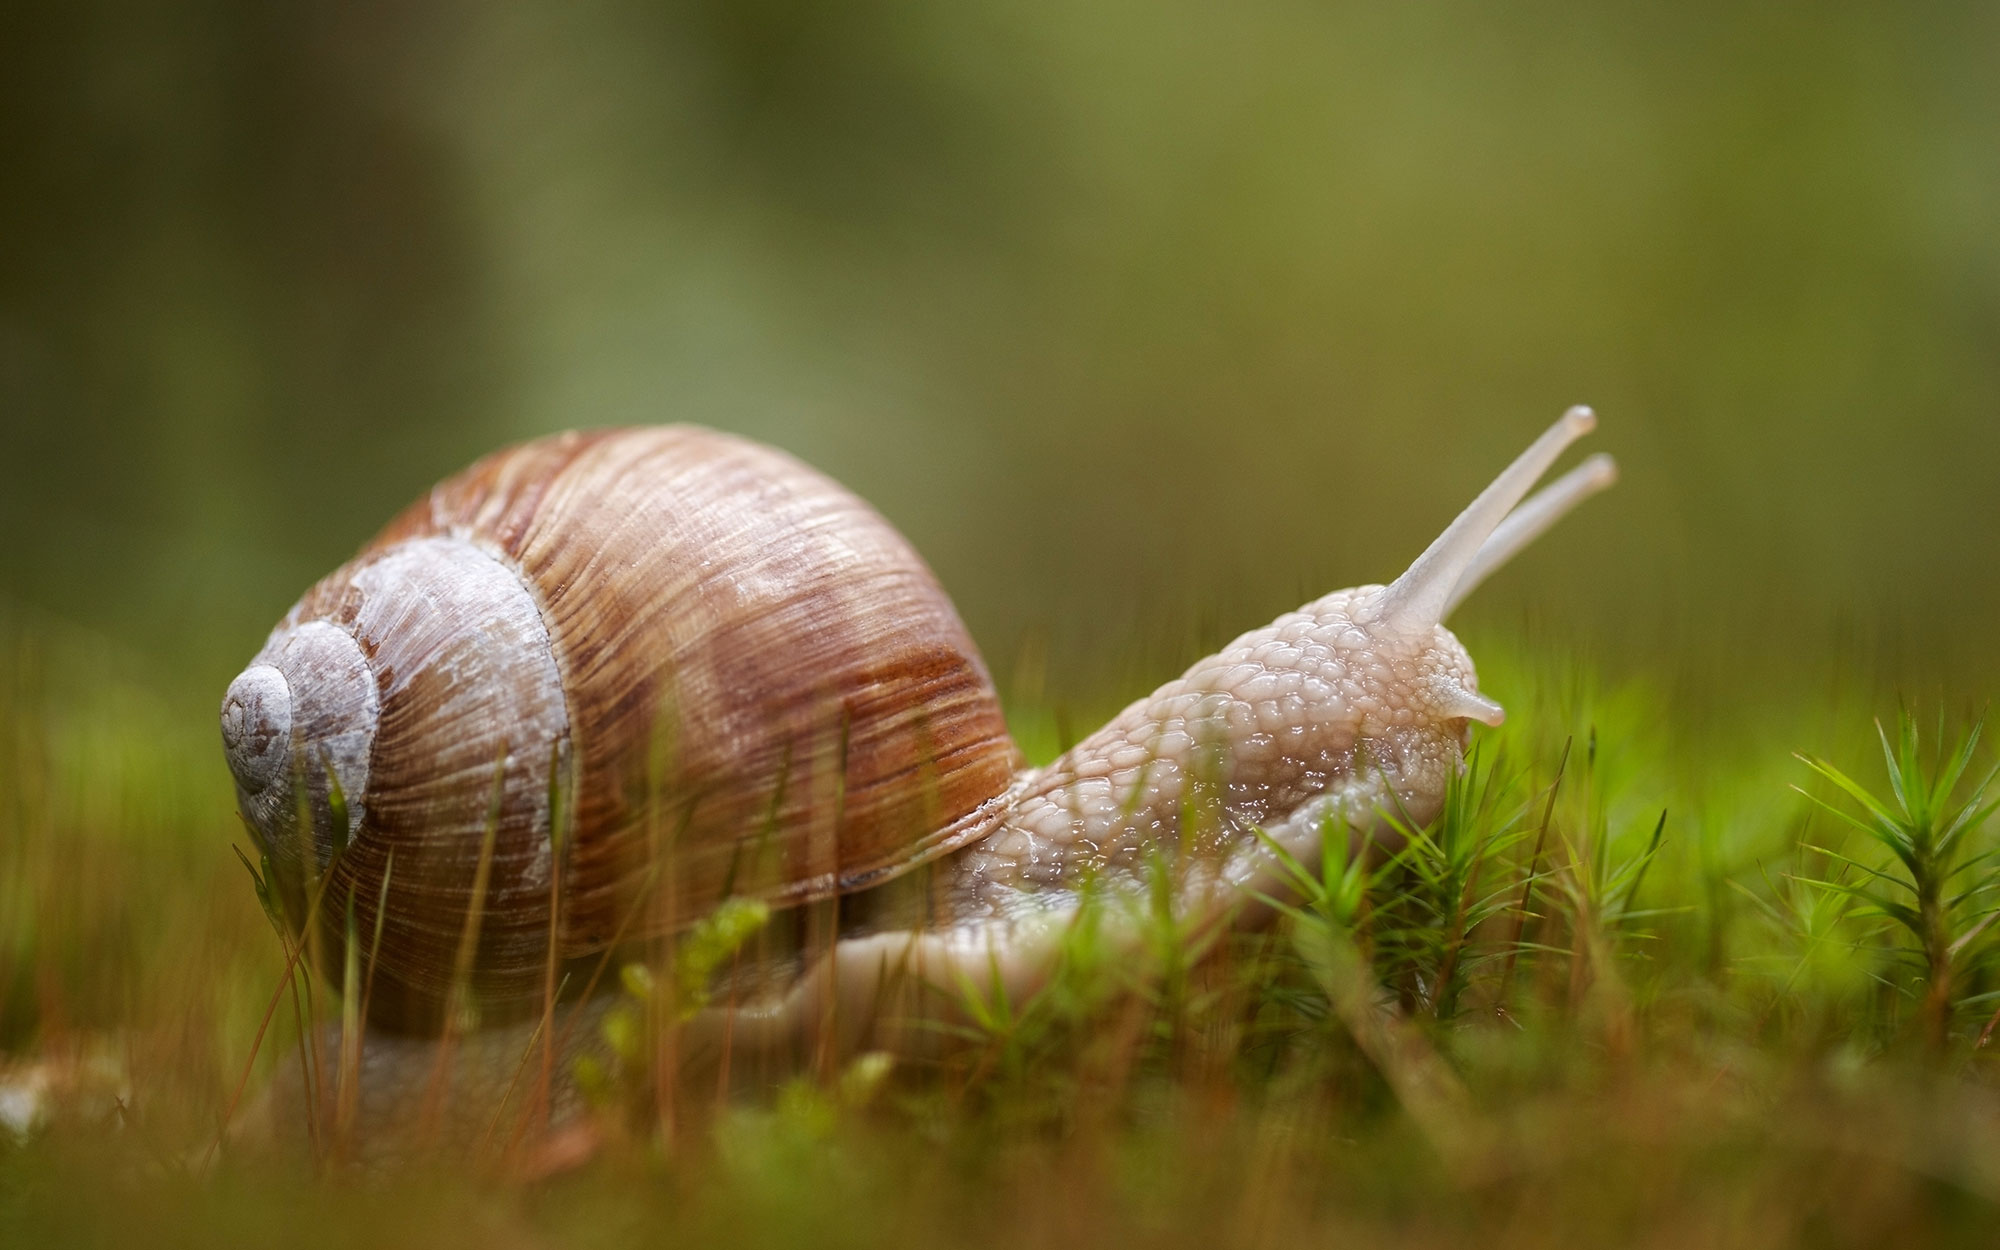 World's Strangest Cold Remedies: Snail Syrup